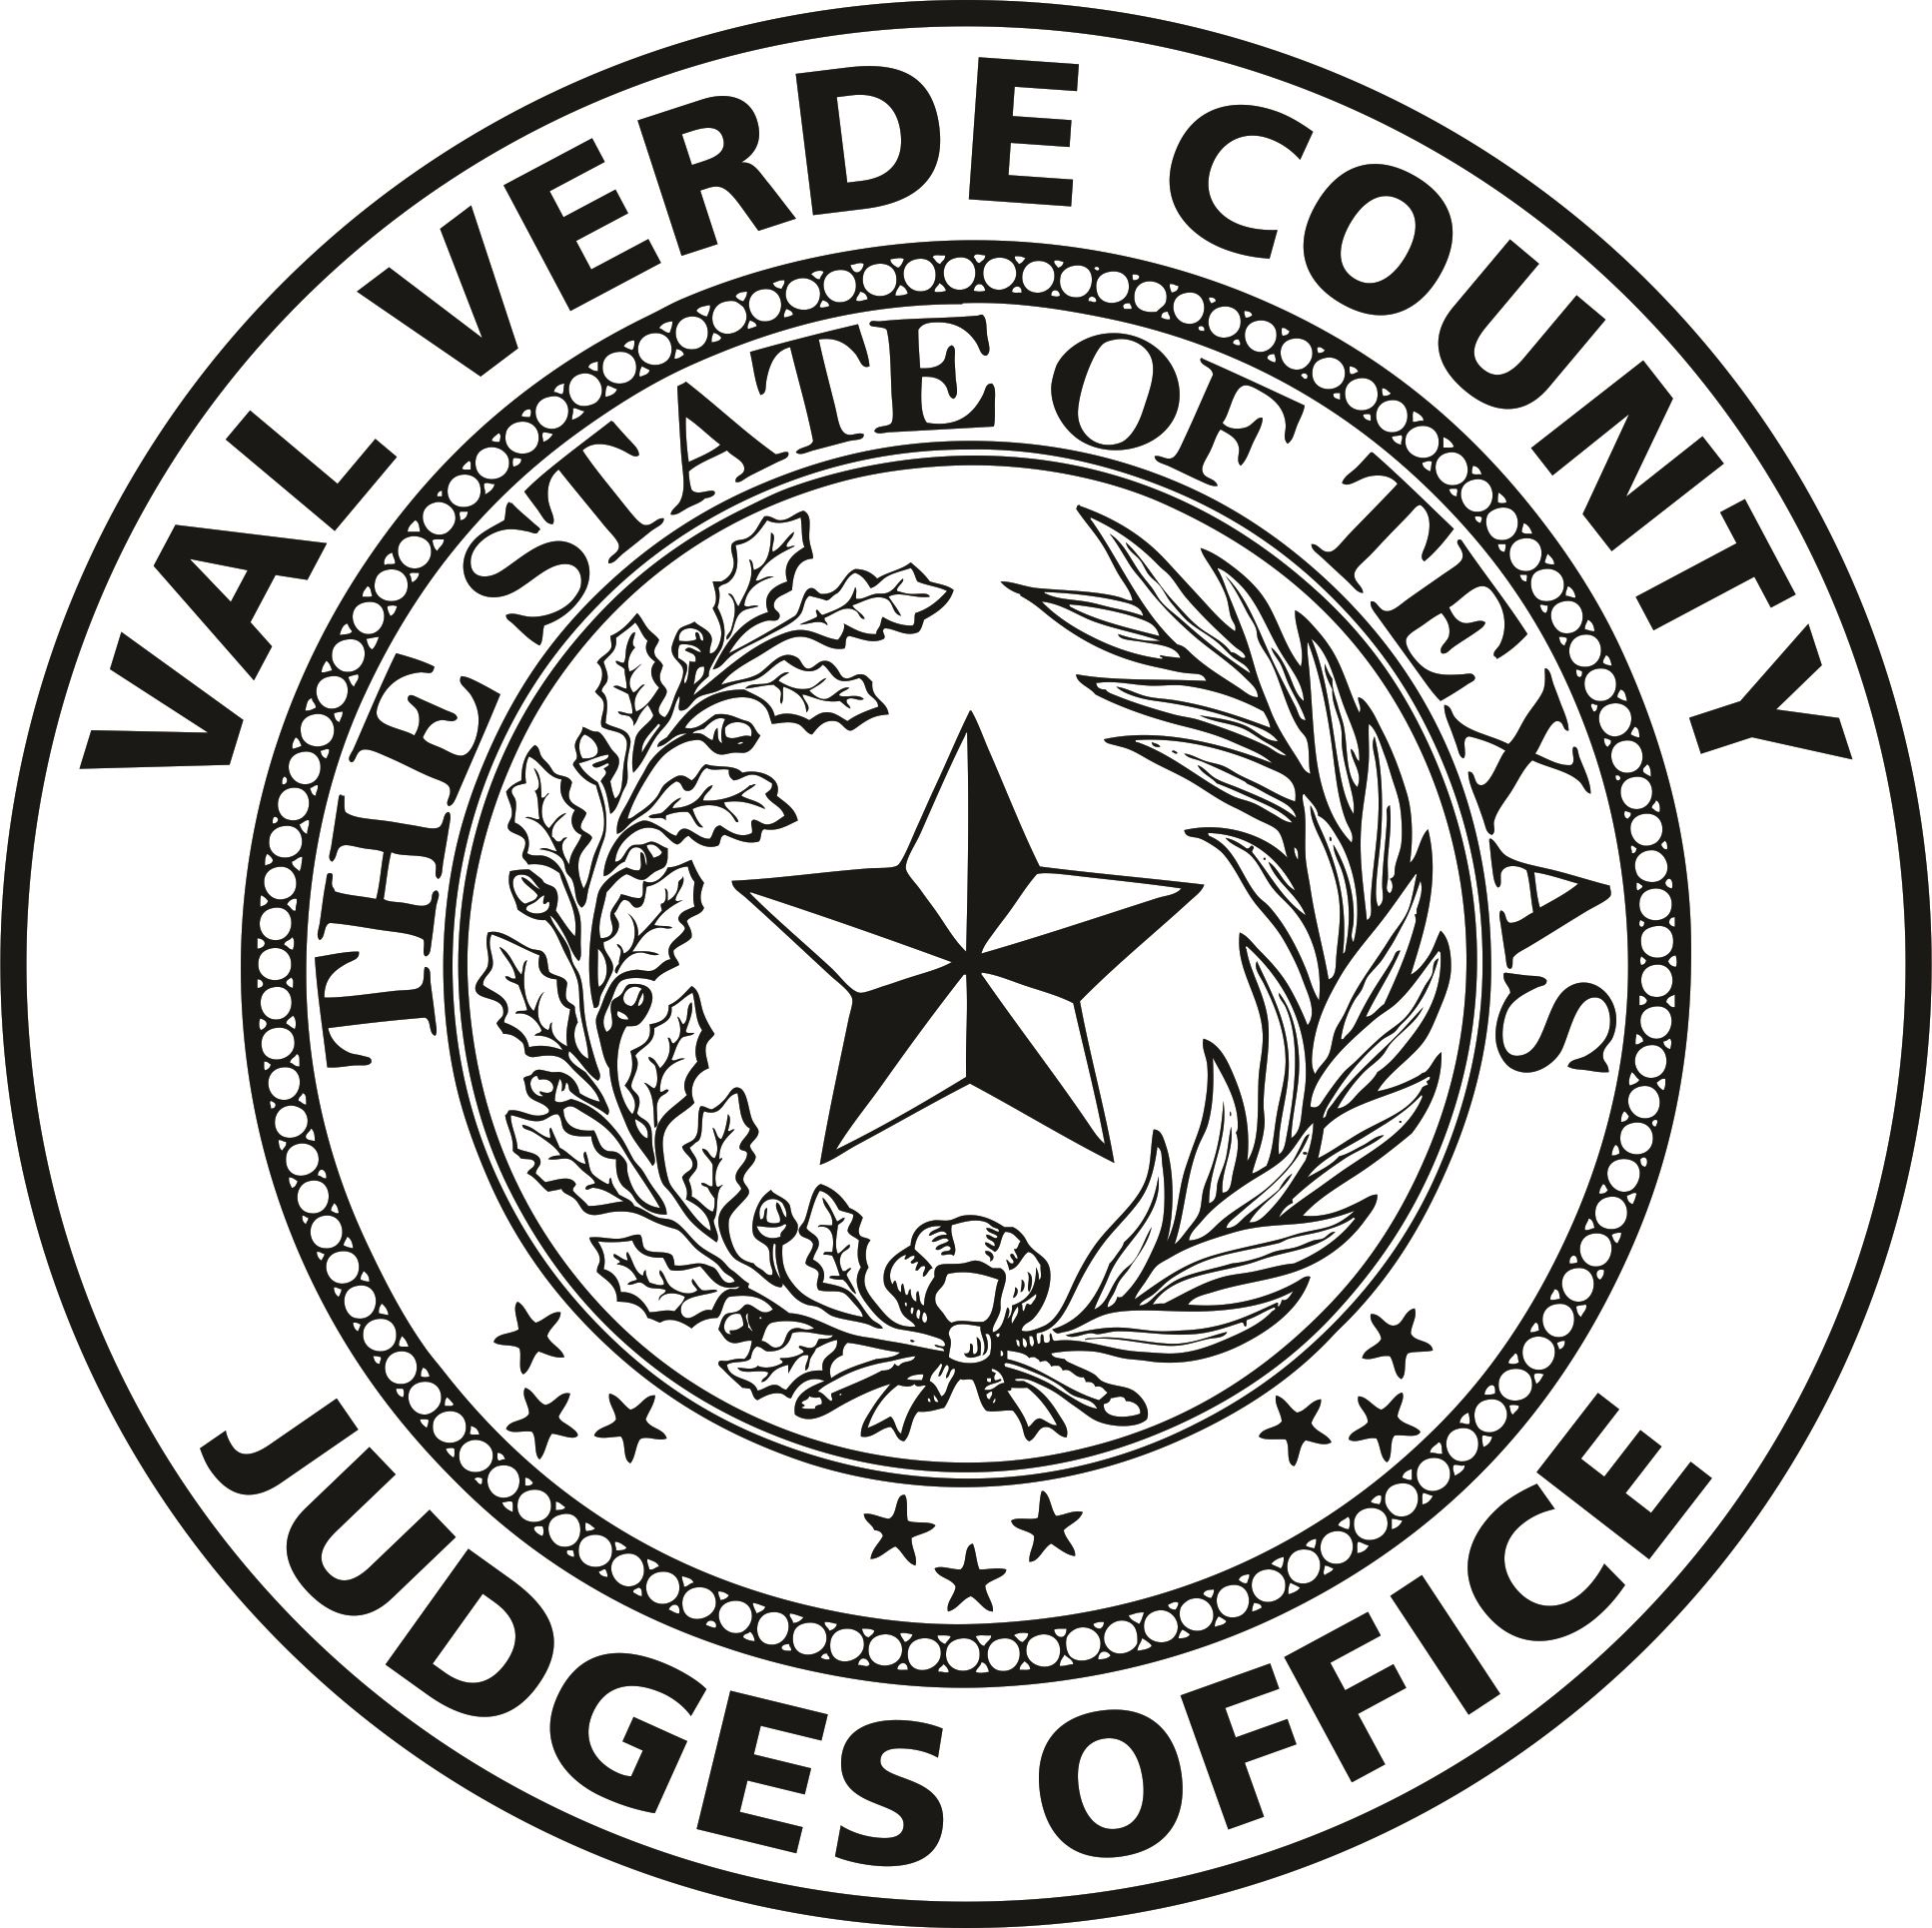 vvc_judgesoffice_jpg